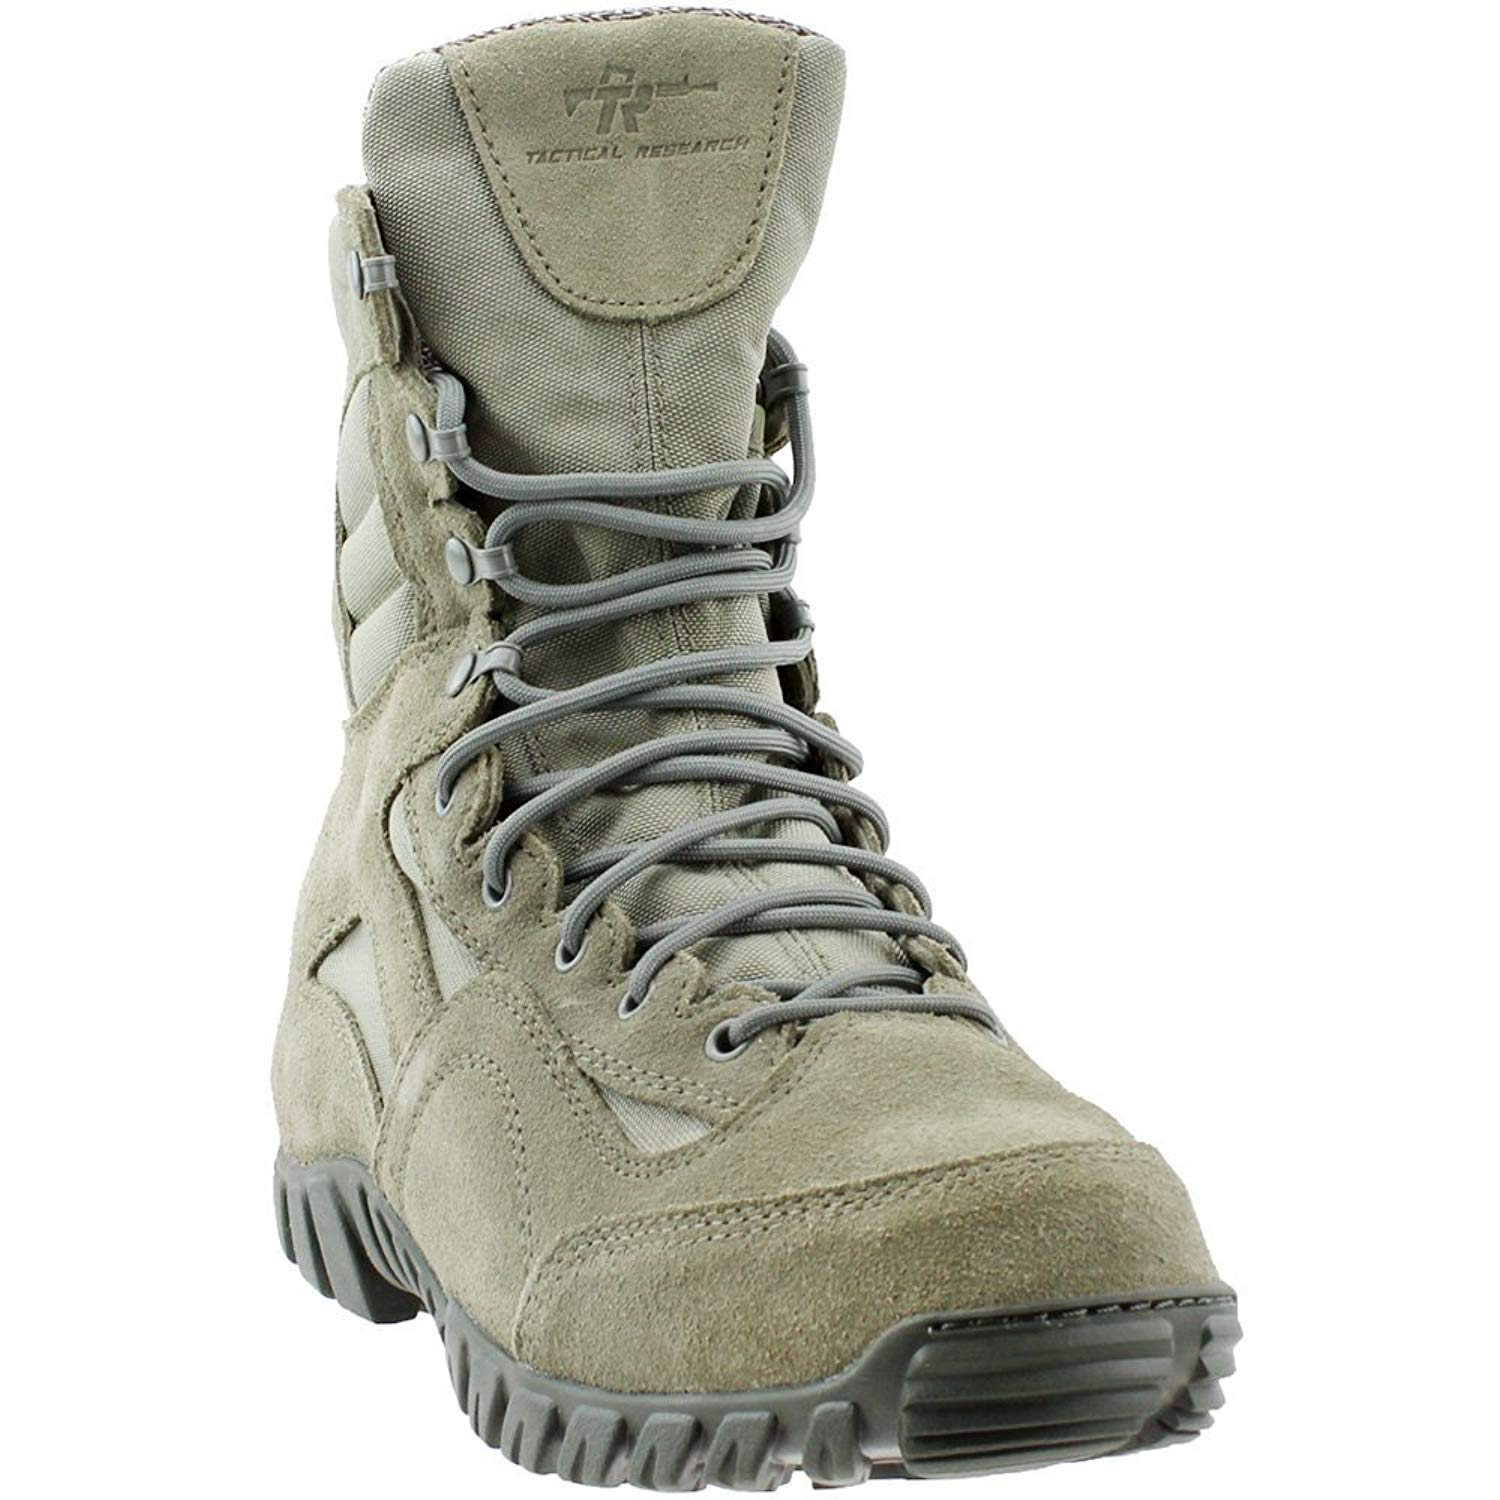 28a54423562 Cheap Khyber Mountain Hybrid Boot, find Khyber Mountain Hybrid Boot ...